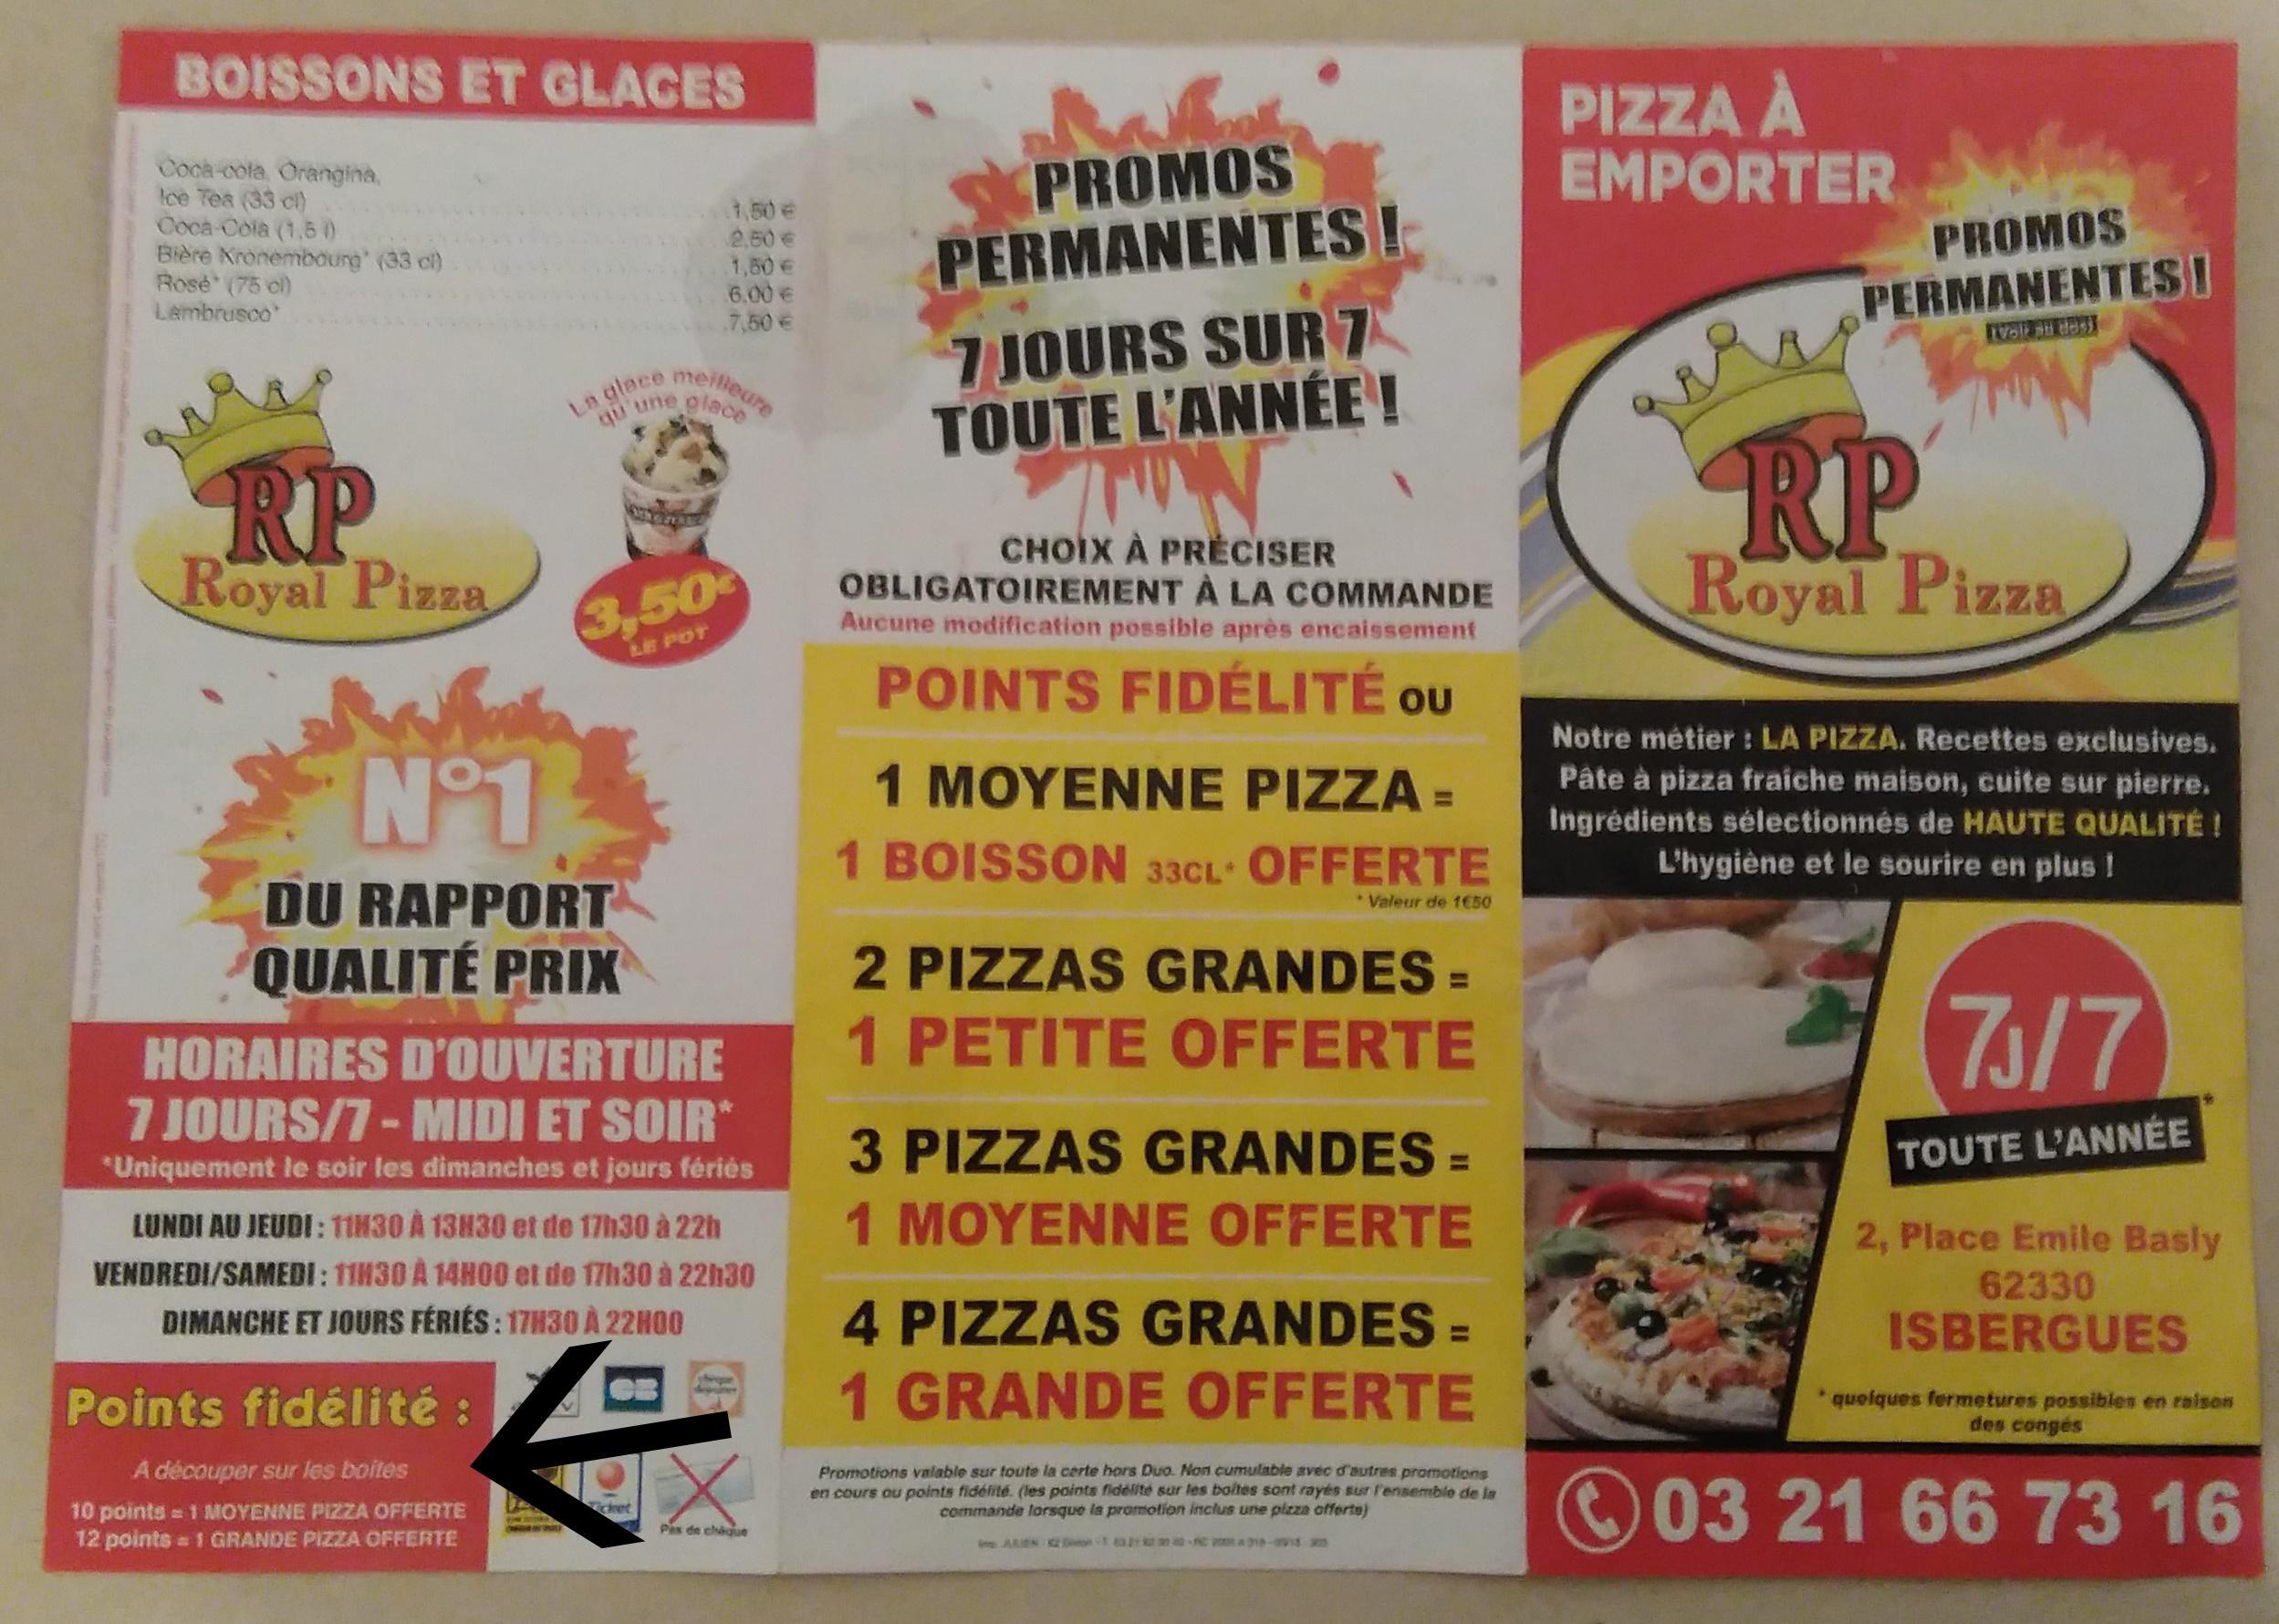 troc de troc 3 points fidélité royal pizza isbergues (lot2) image 1